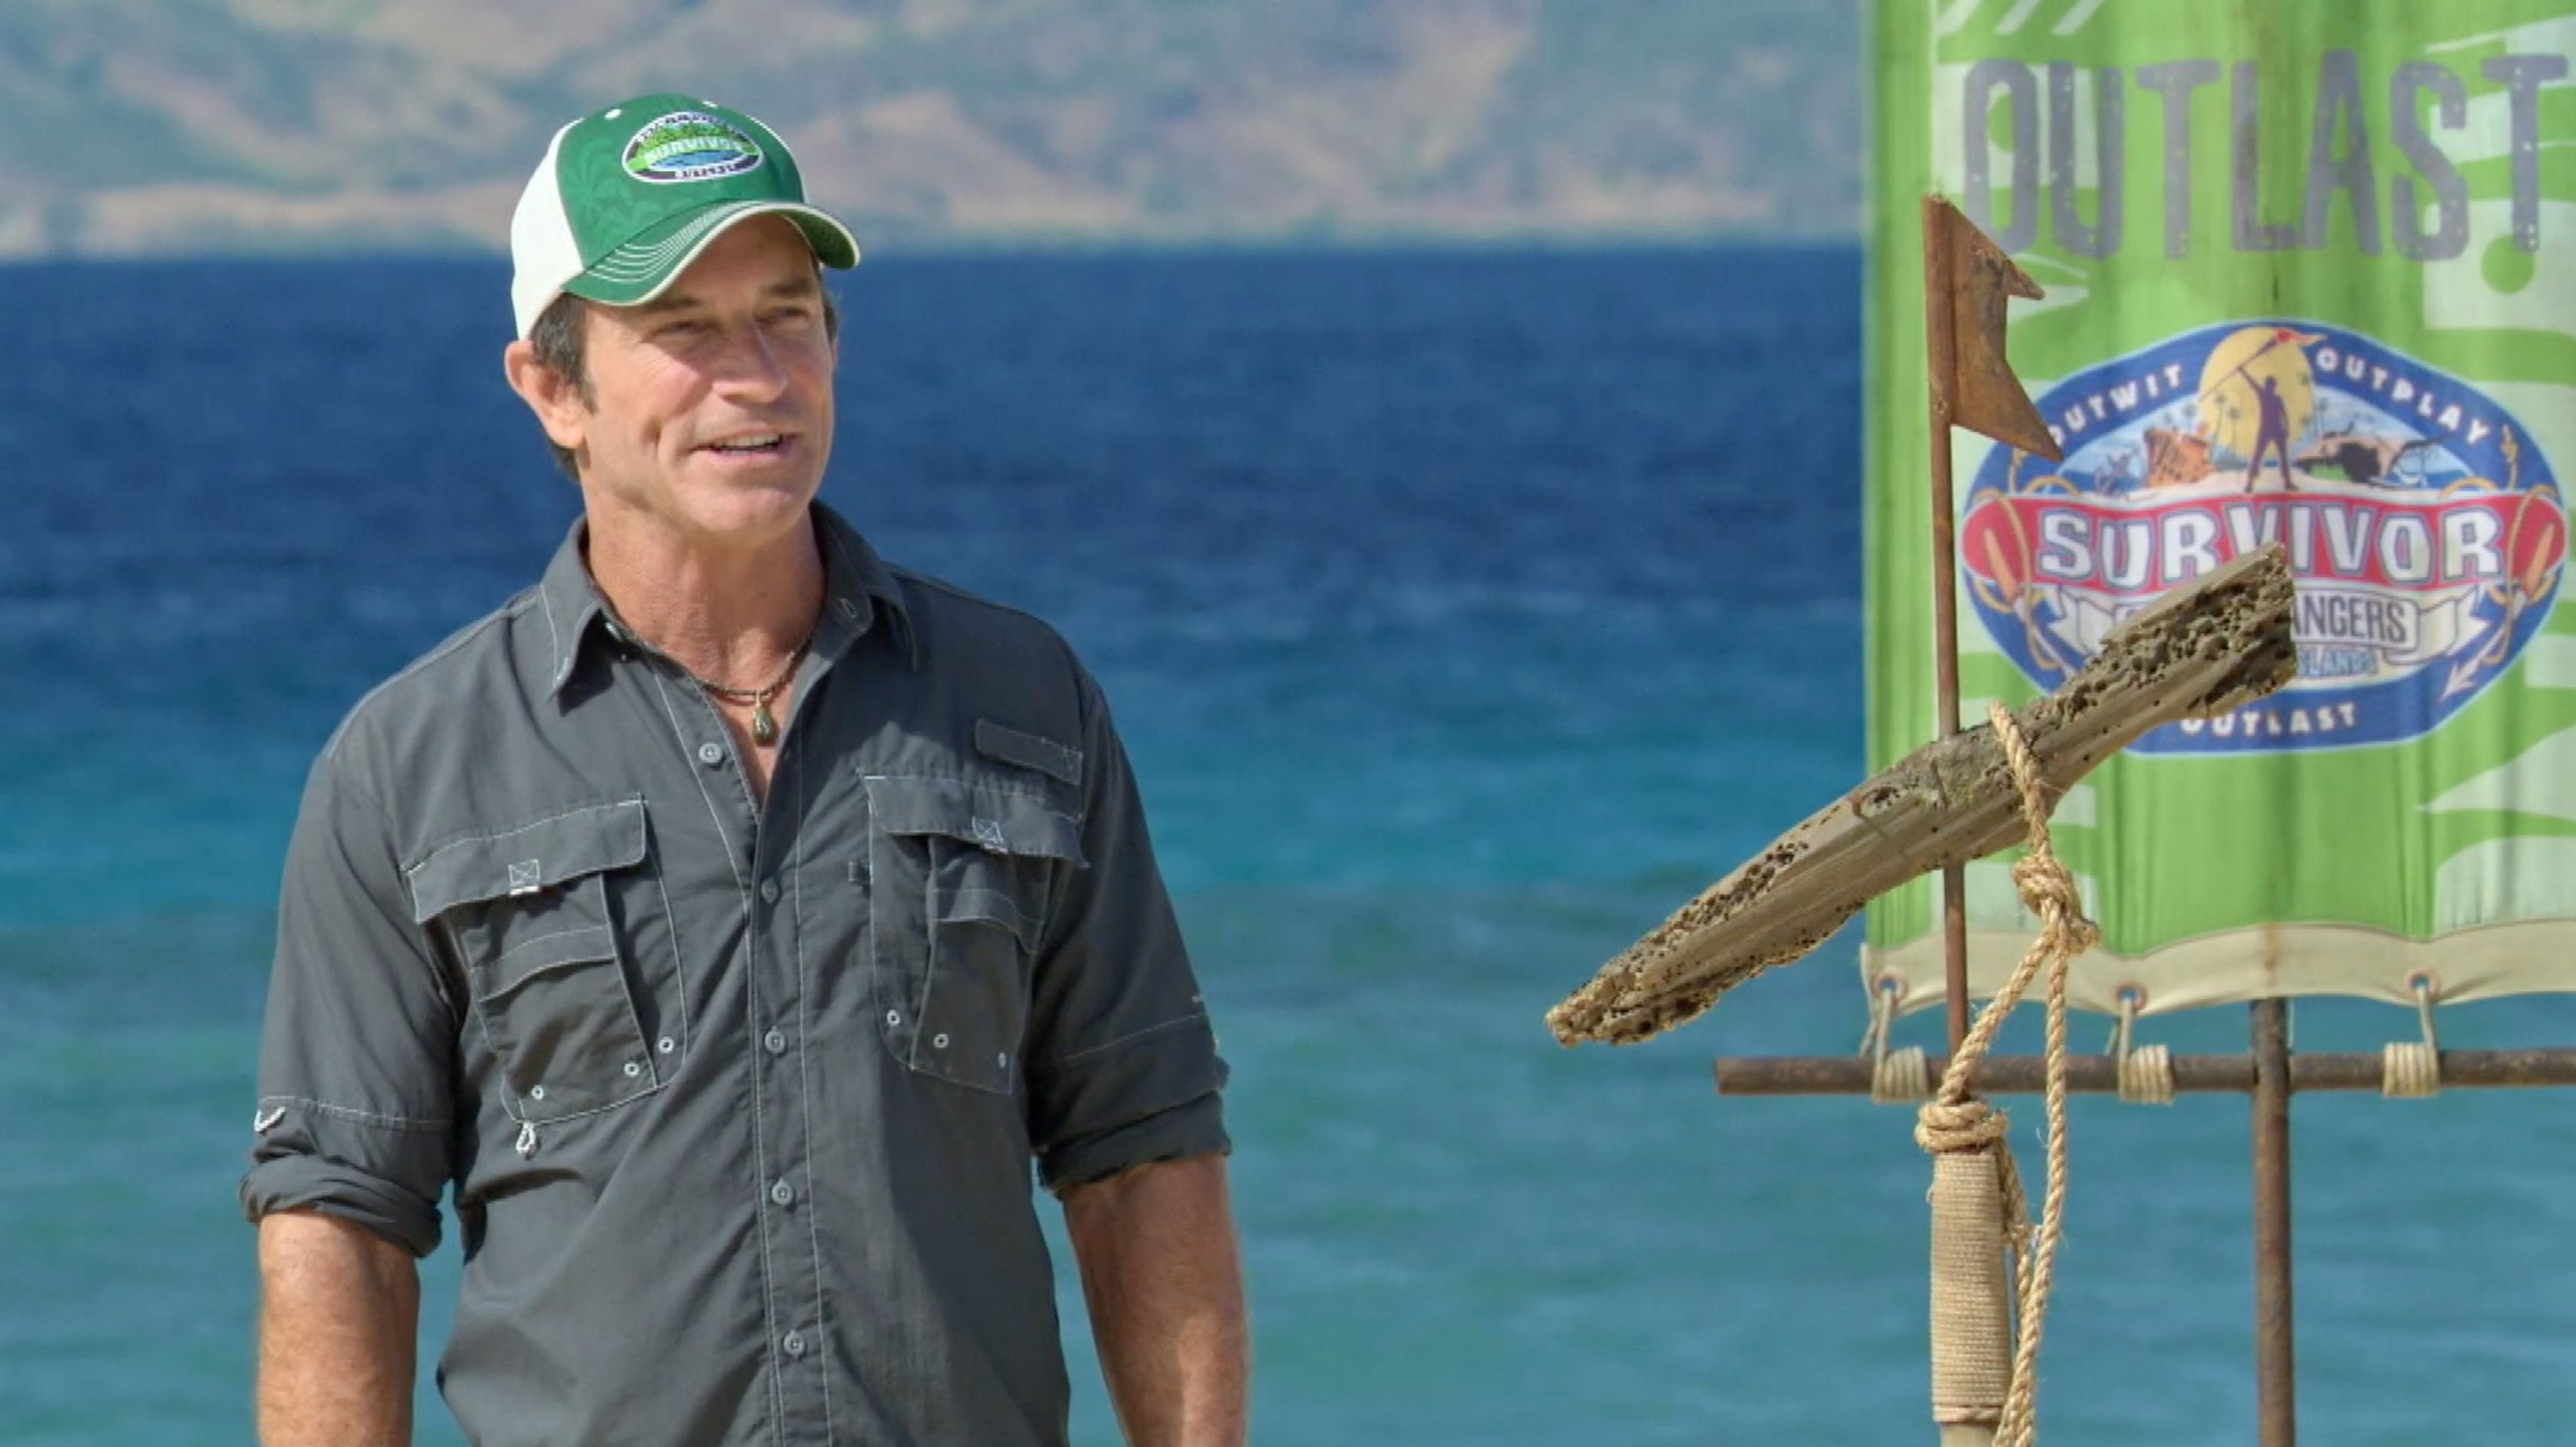 MANA ISLAND - APRIL 18: 'There's A New Sheriff in Town' - Jeff Probst on the eighth and ninth episode of SURVIVOR: Game Changers, airing Wednesday, April 19 (8:00-10:00 PM, ET/PT) on the CBS Television Network. Image is a screen grab. (Photo by CBS via Getty Images)